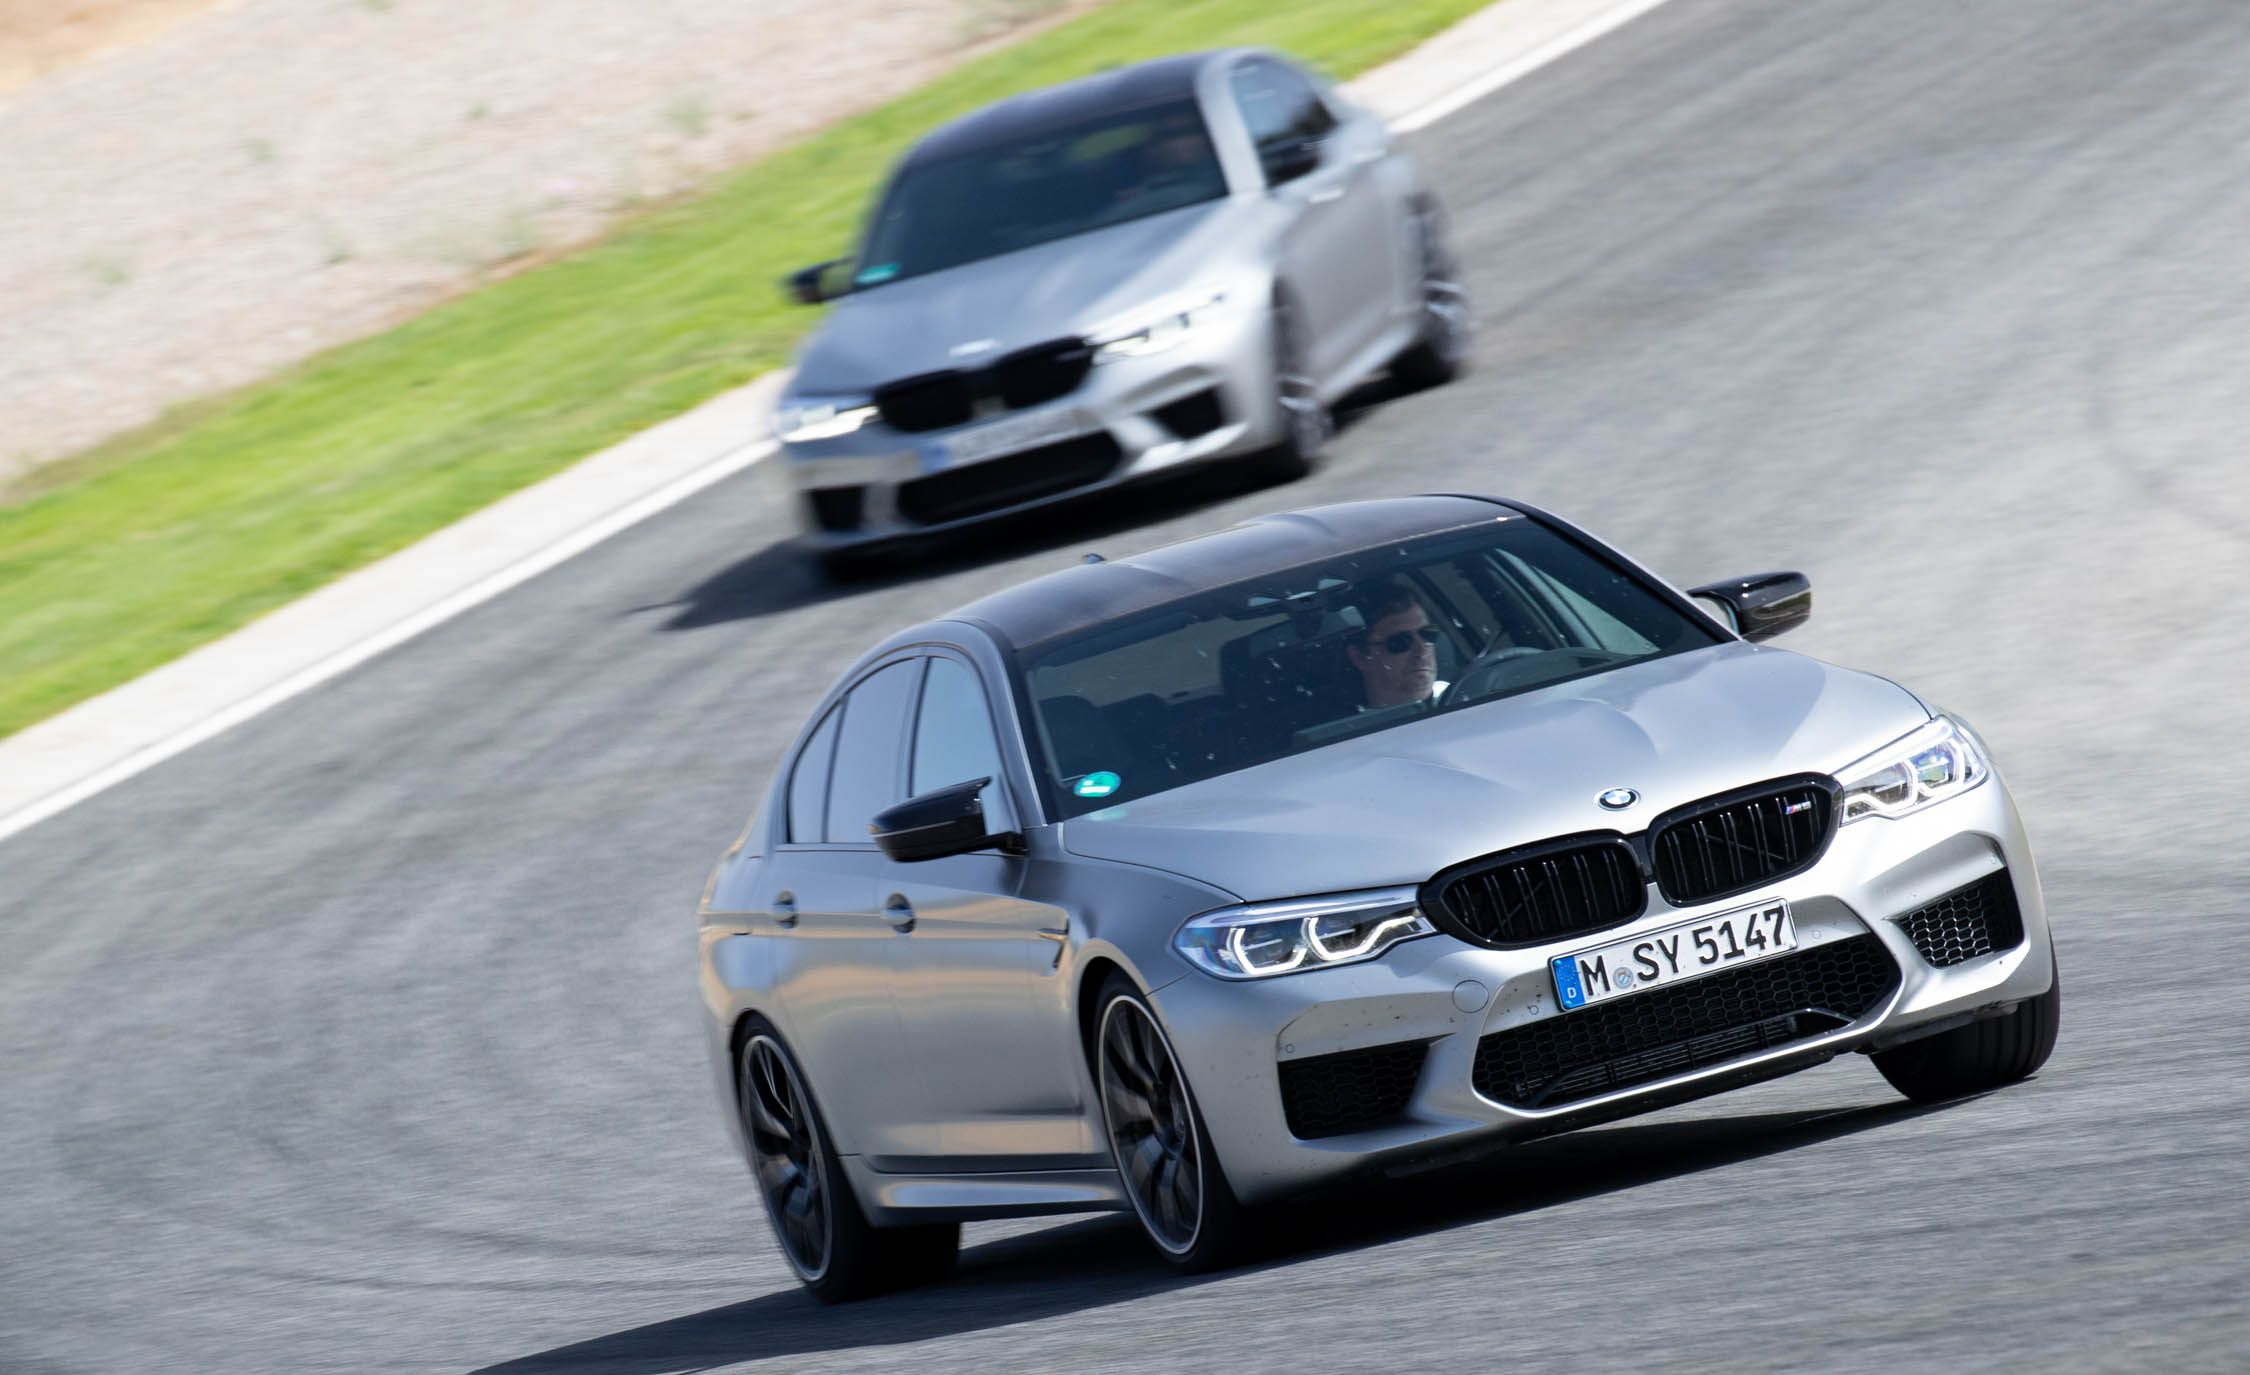 BMW M5 Reviews | BMW M5 Price, Photos, and Specs | Car and Driver